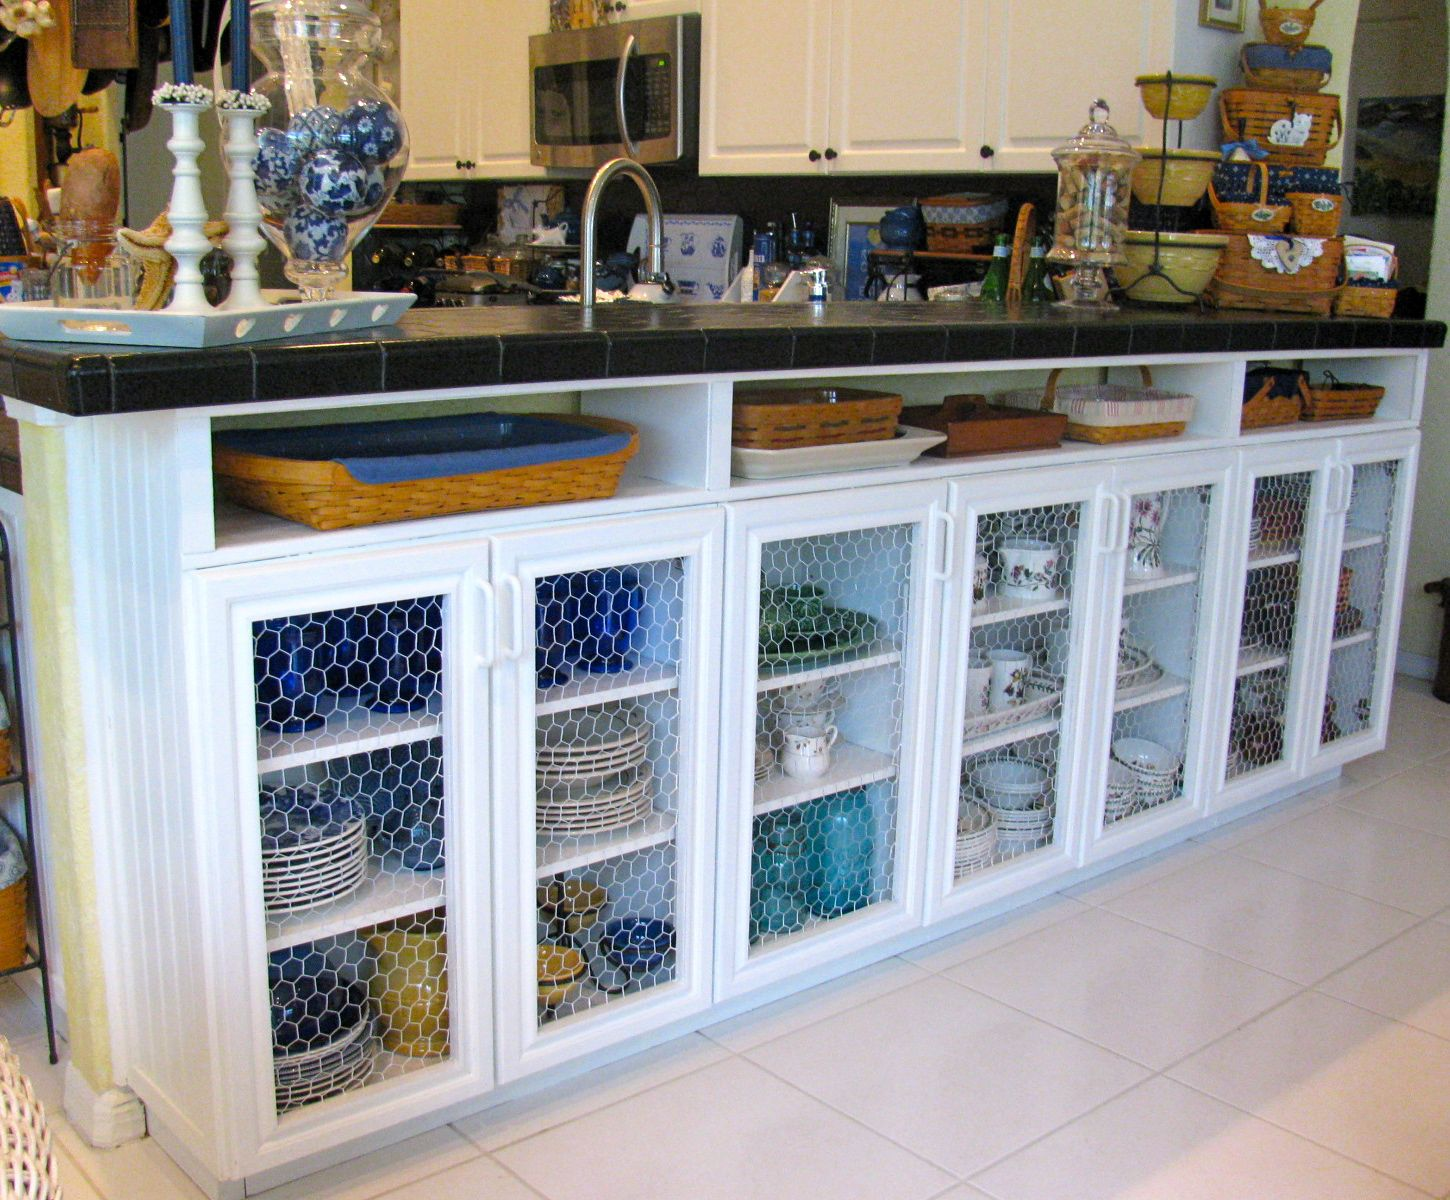 I could try this with some pre fab ikea shelves under our Diy under counter storage